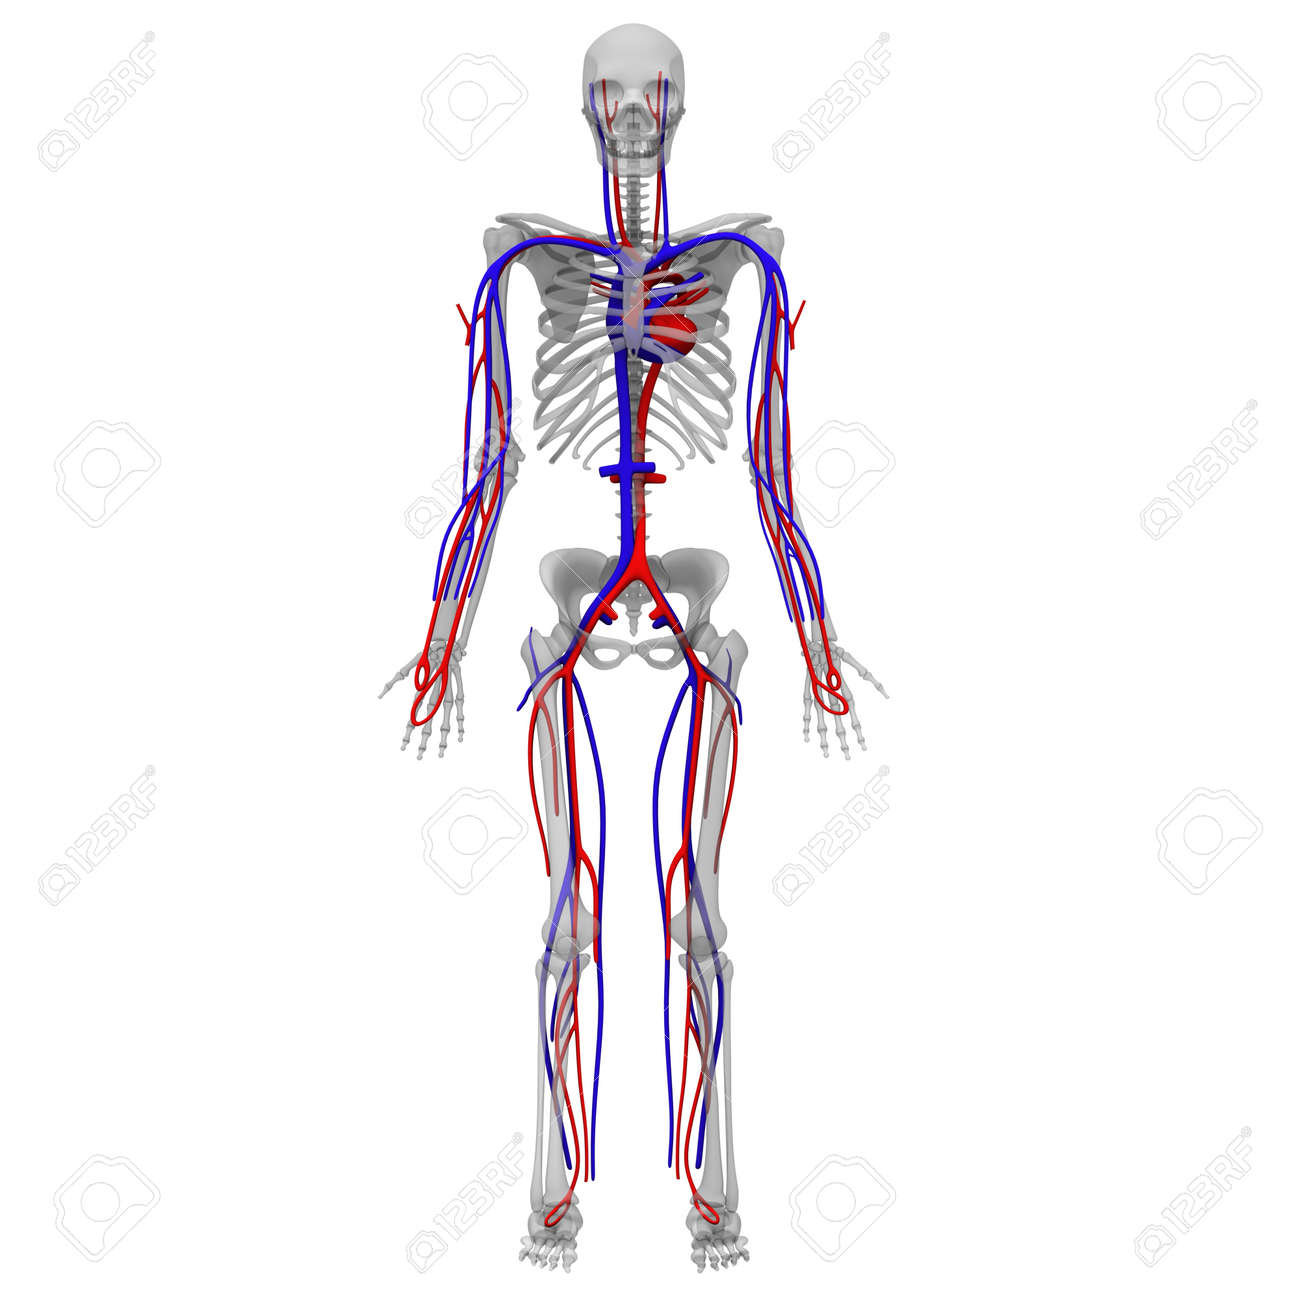 3d Render Of Circulatory System Stock Photo Picture And Royalty